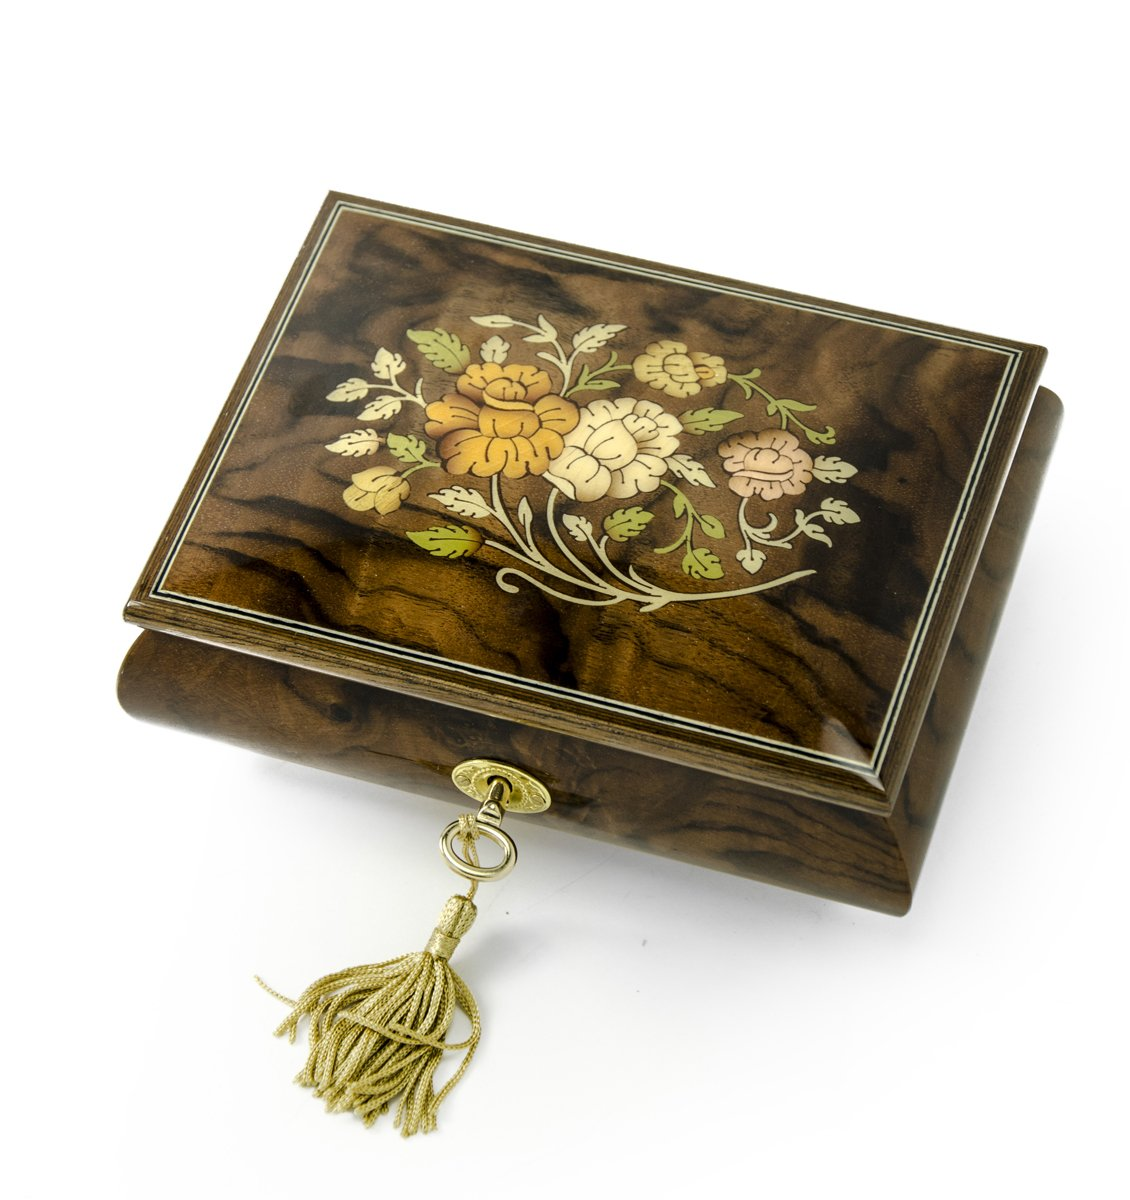 Handcrafted 18 Note Italian Walnut Floral Inlay Musical Jewelry Box with Lock and Key - There is No Business Like Show Business